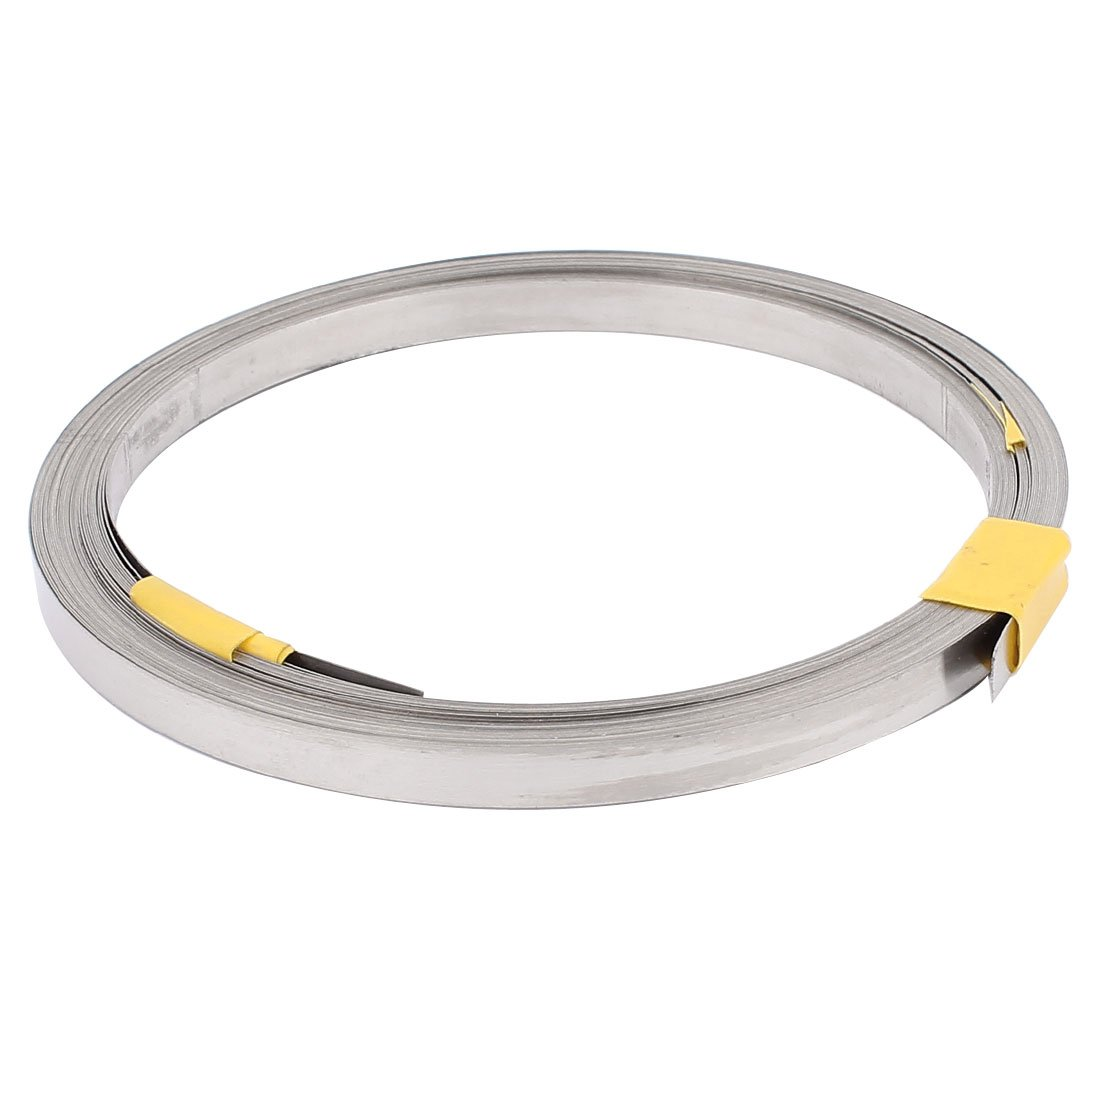 uxcell 10M 32.8Ft 0.2x6mm Nichrome Flat Heater Wire for Heating Elements